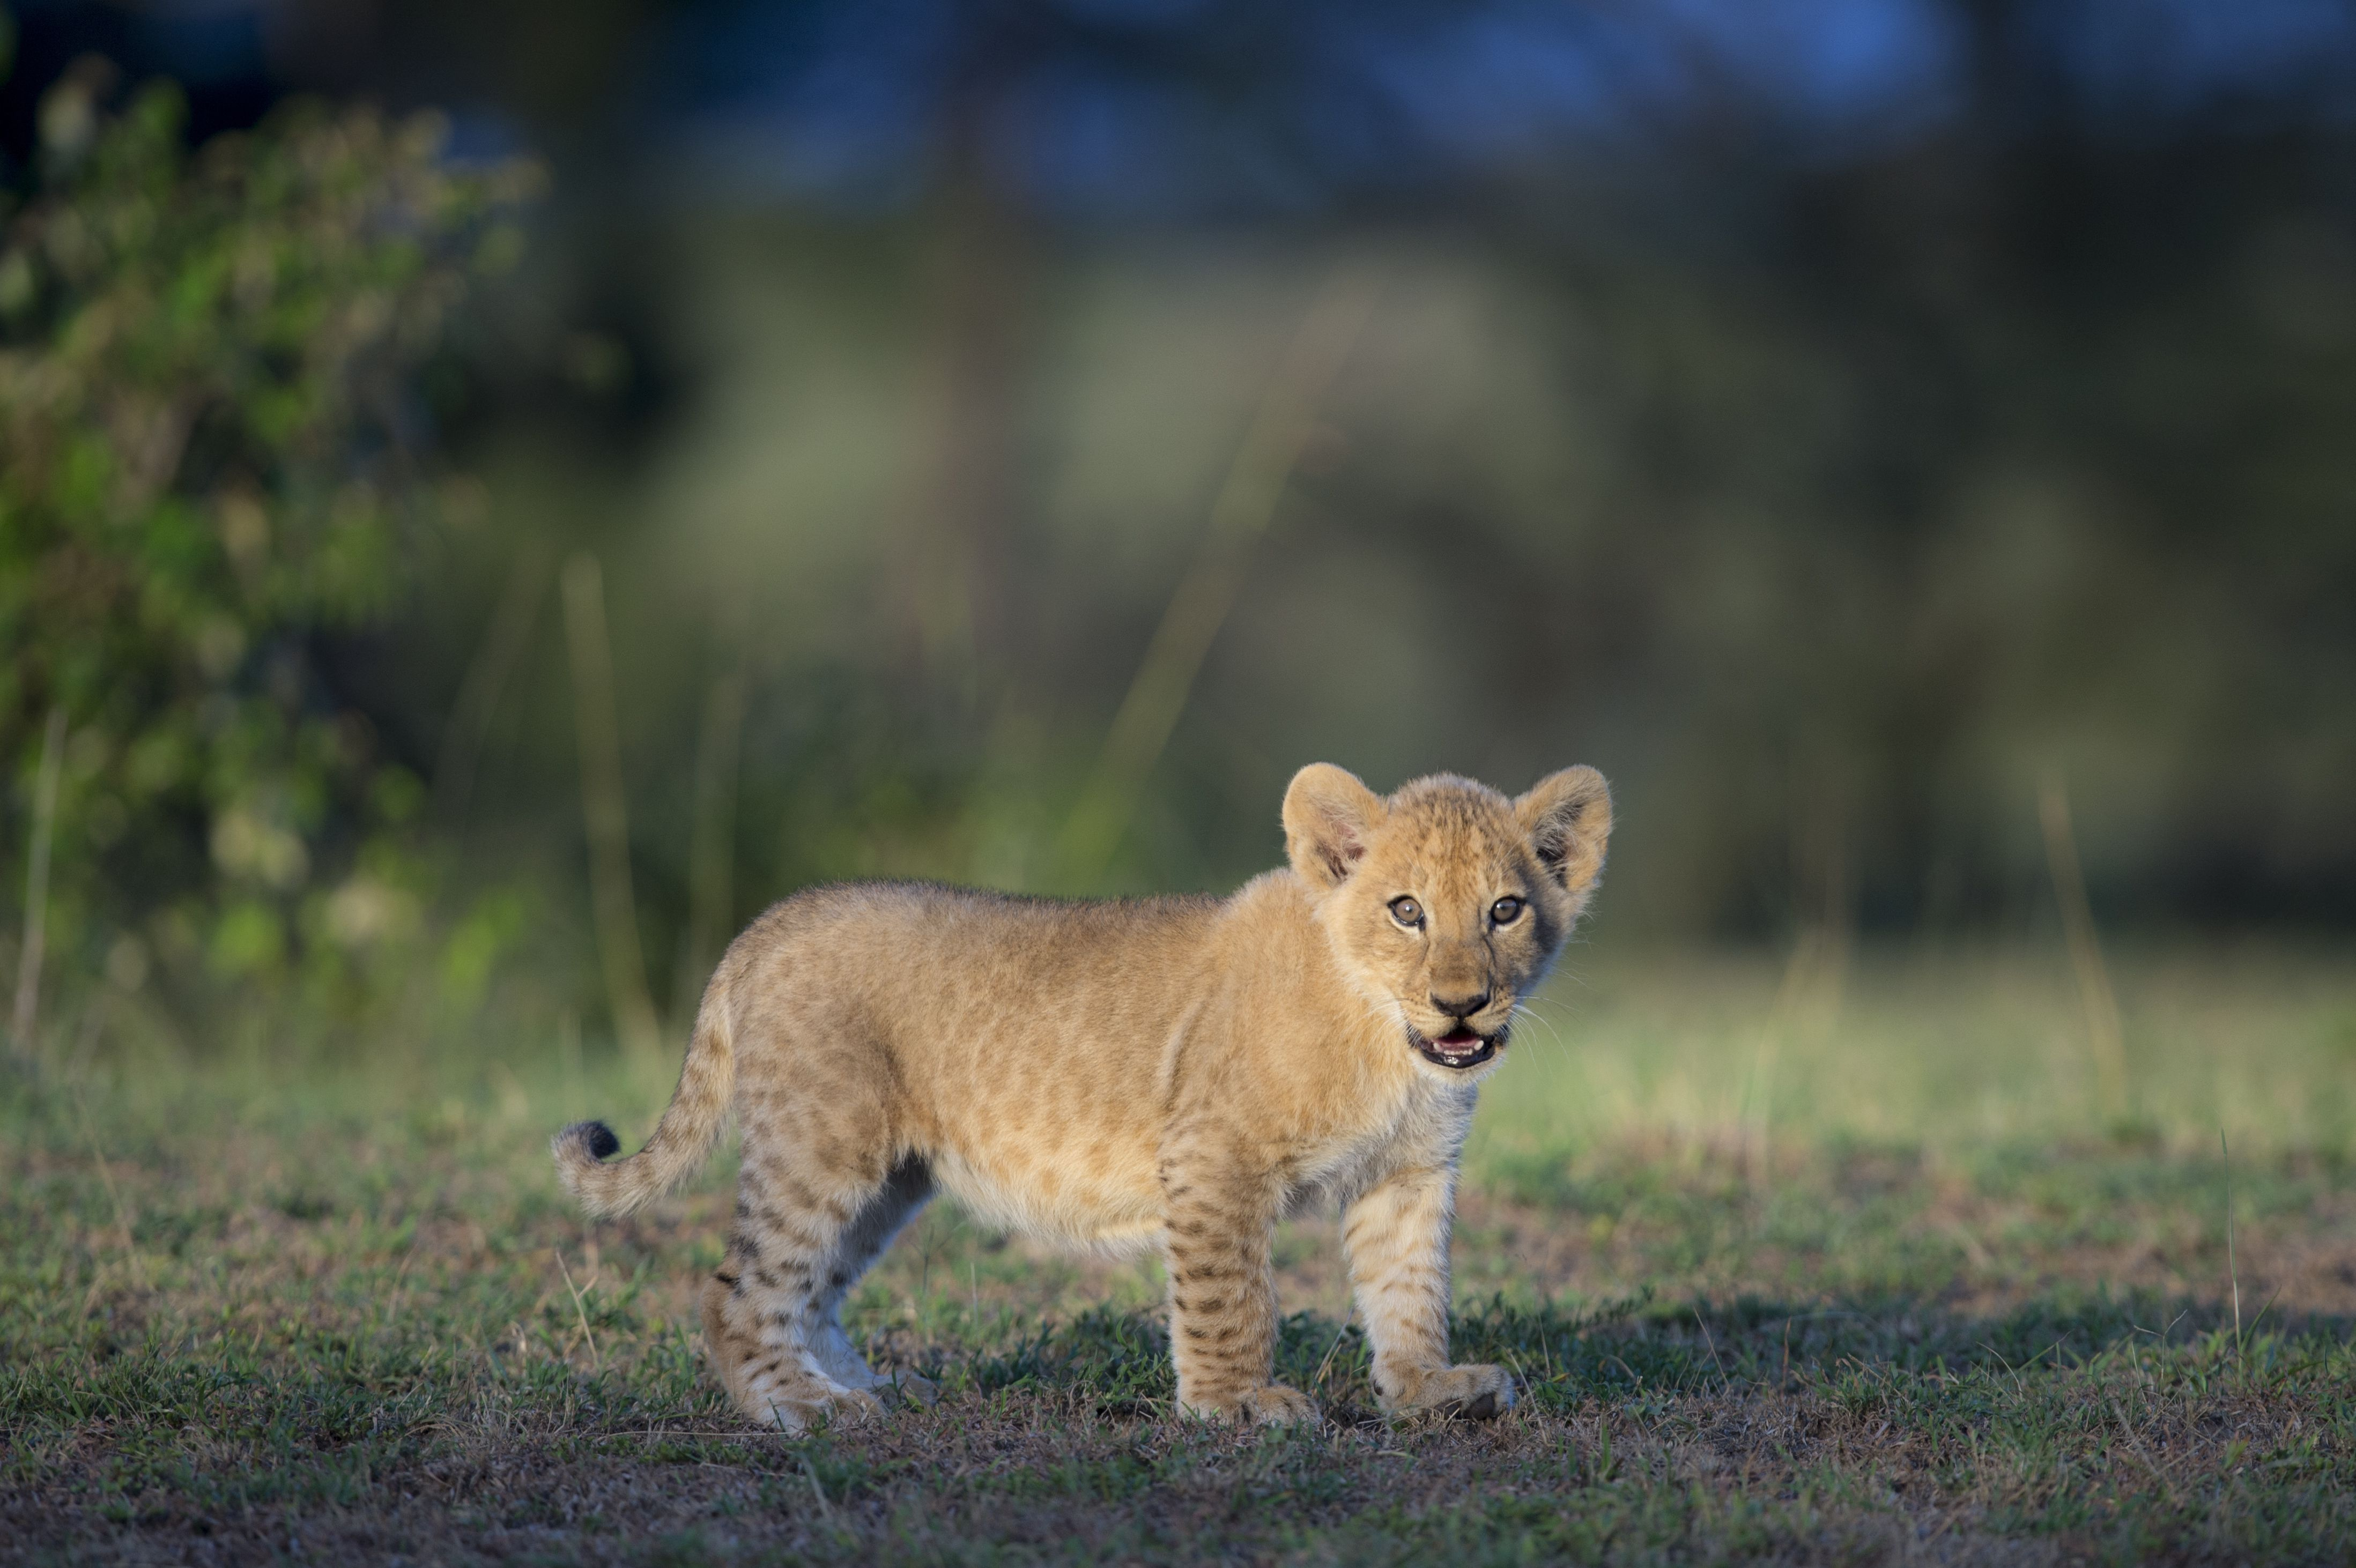 Lion cubs are spotted.